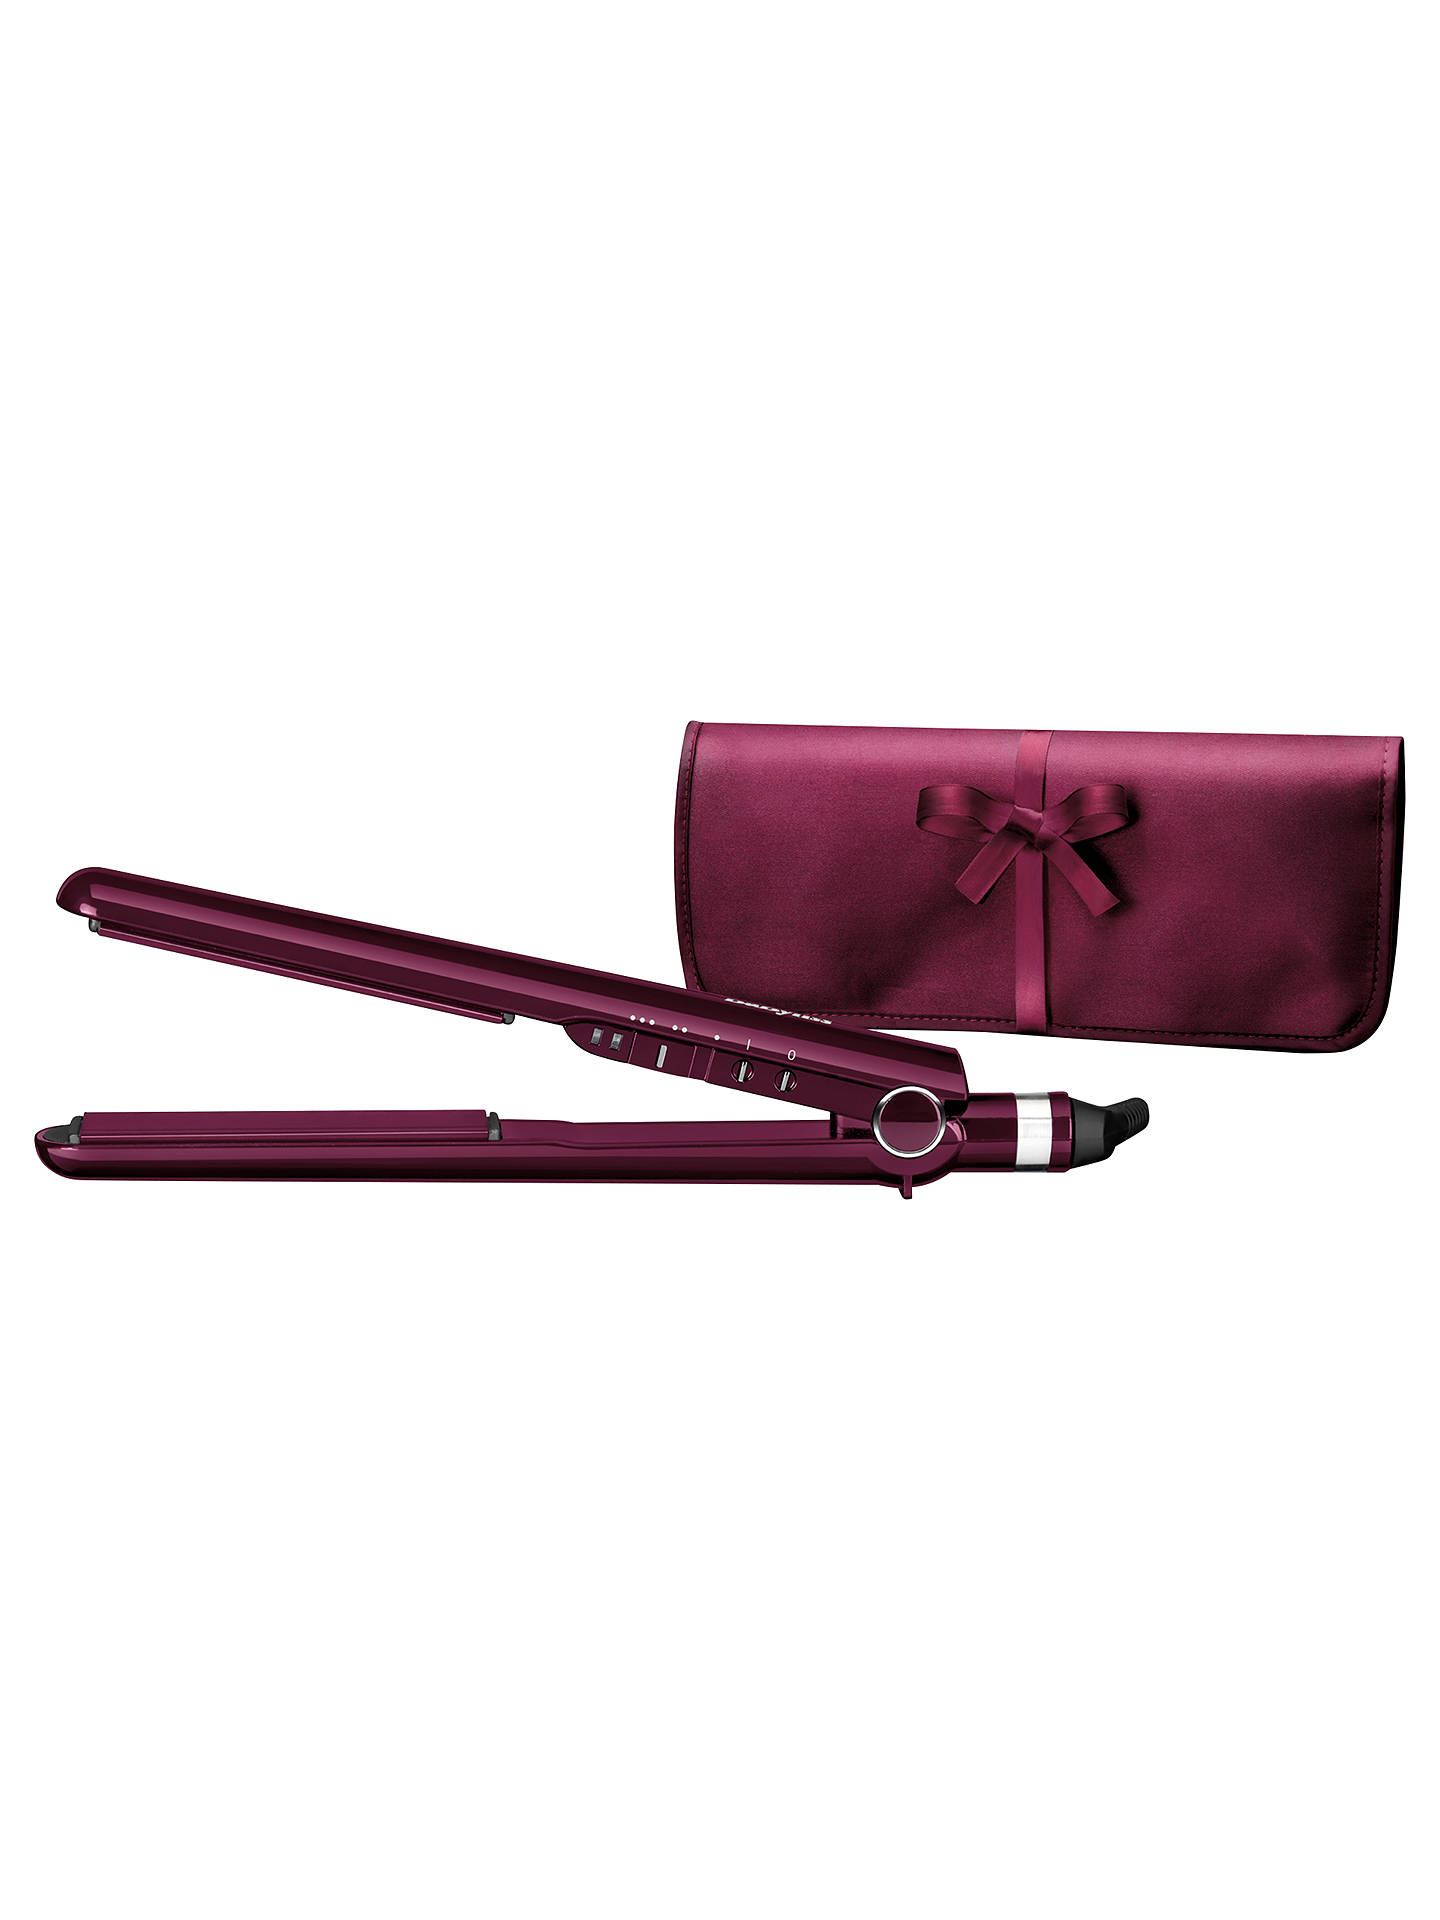 Buy BaByliss 2198KU Pro 235 Elegance Hair Straighteners, Raspberry Online at johnlewis.com